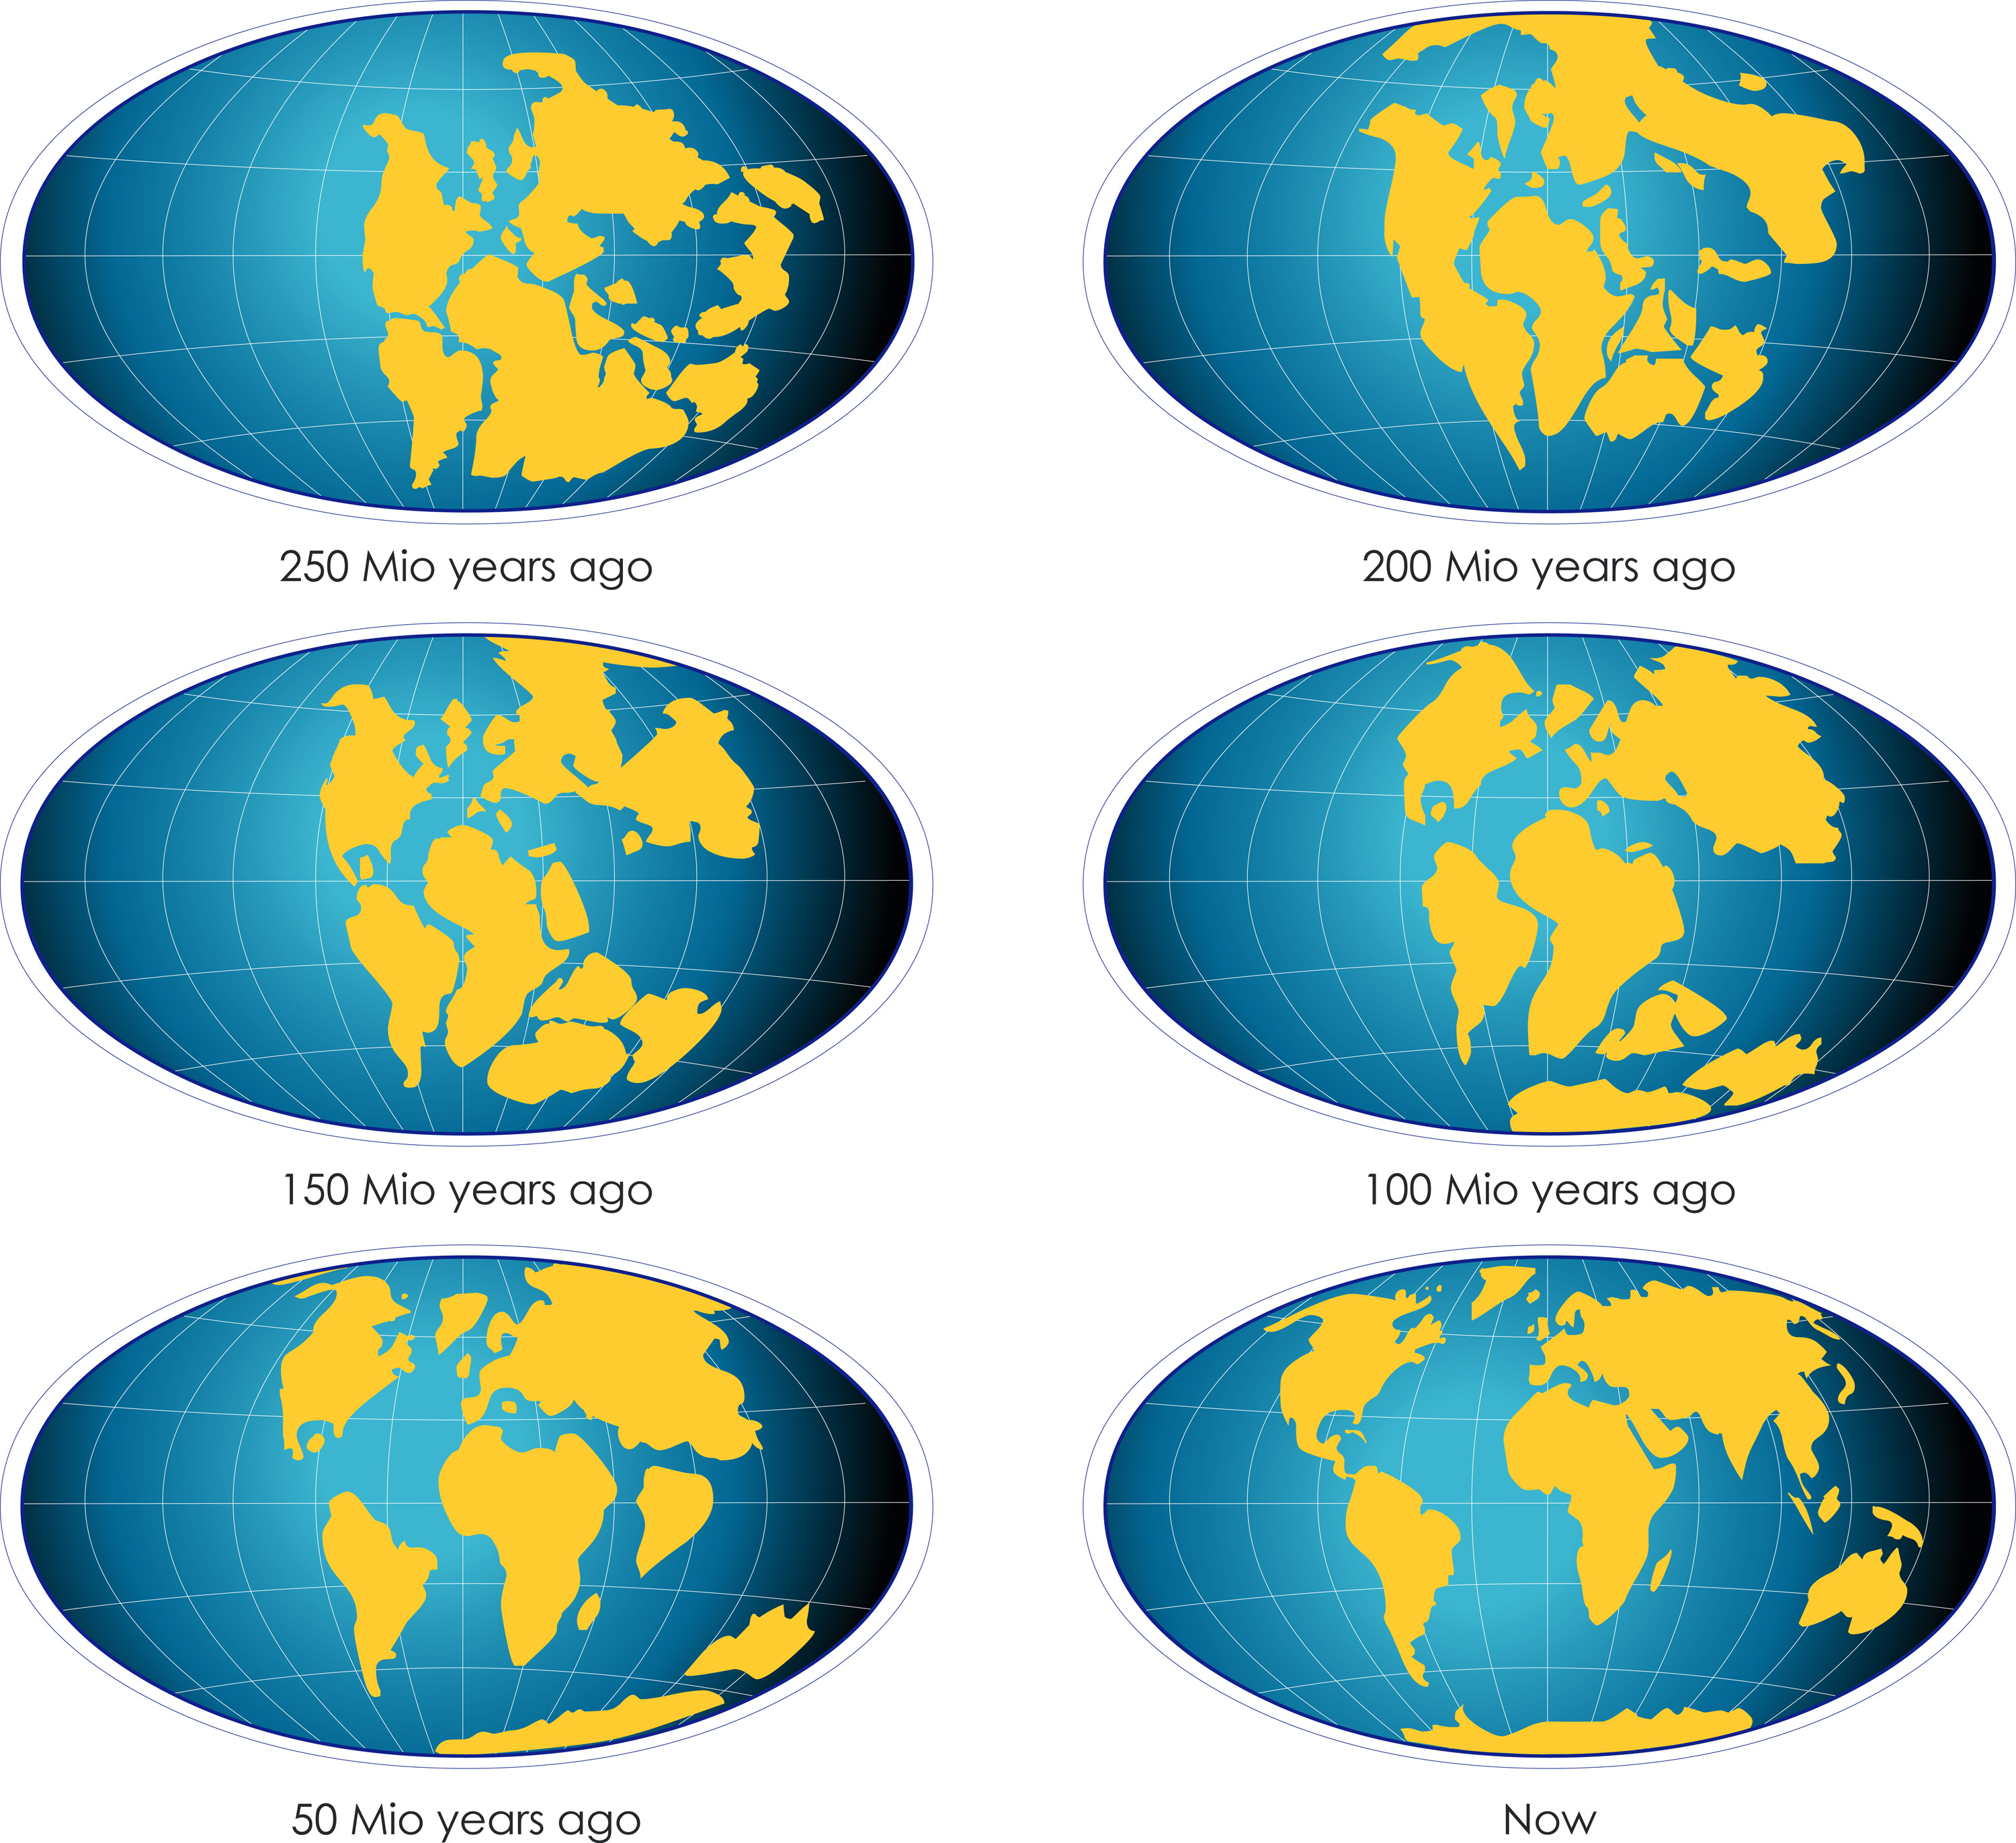 Sweden On Earth Physical Geography Of Sweden